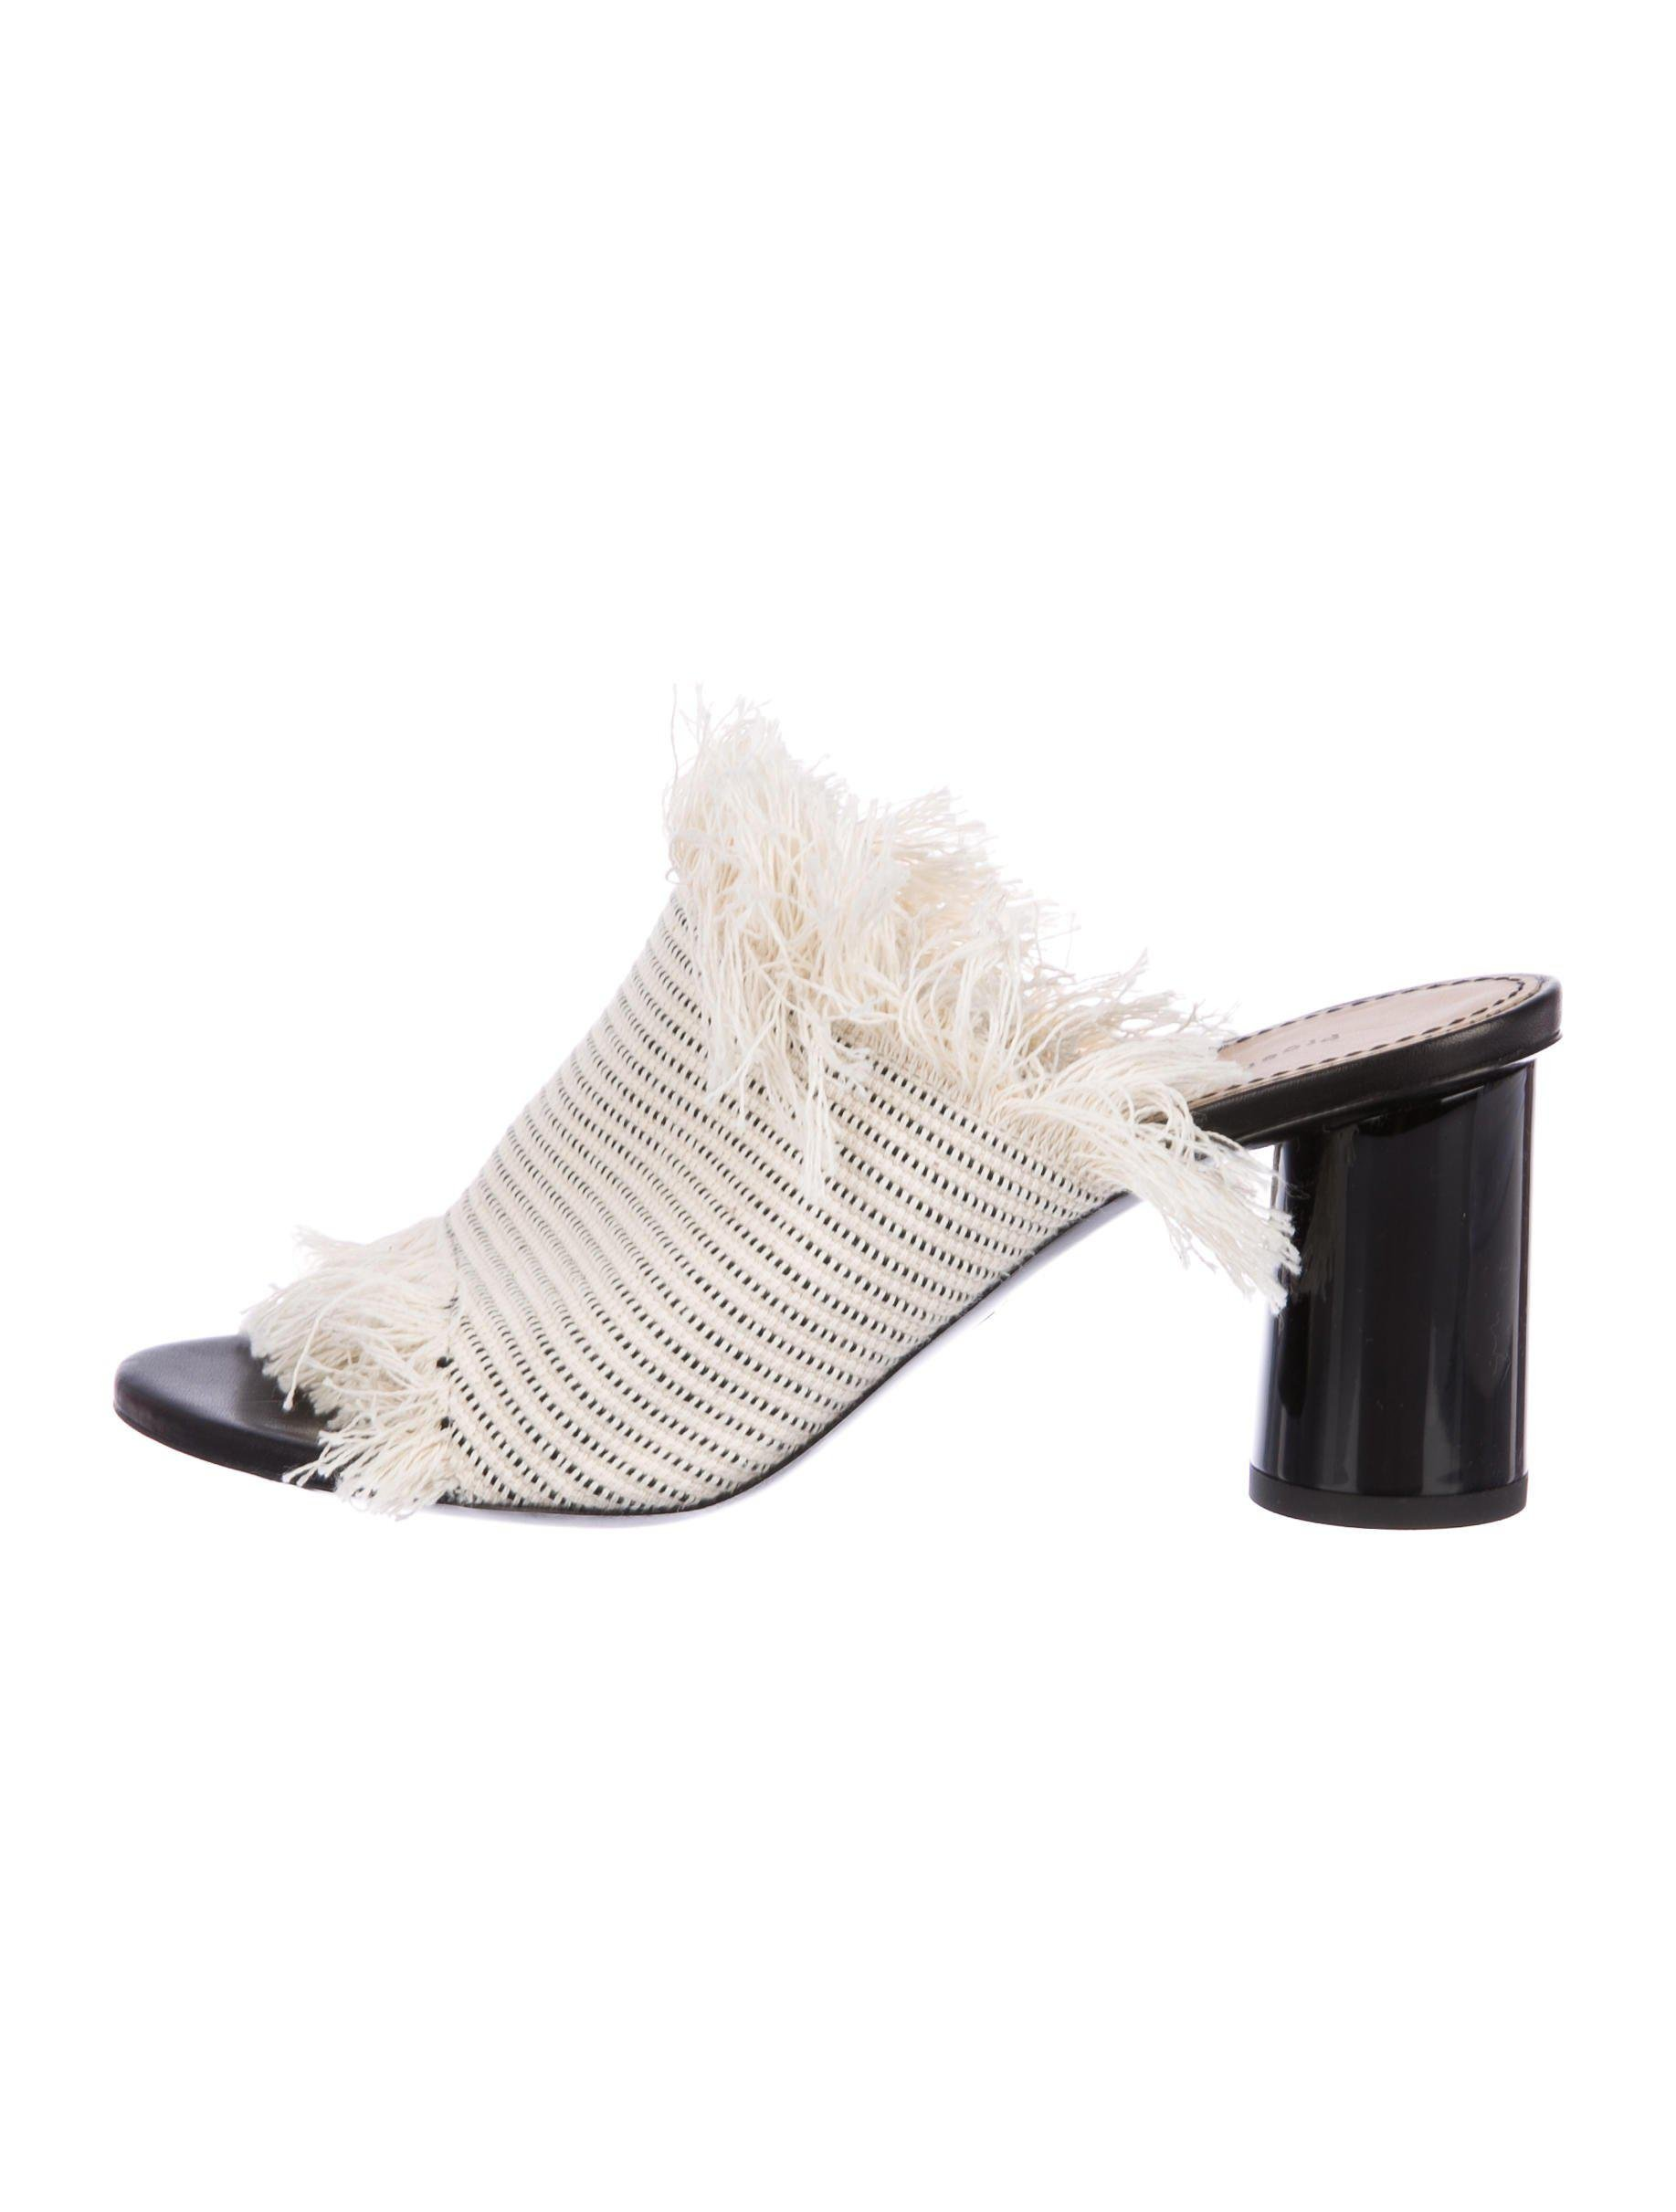 Proenza Schouler Fringe-Trimmed Slide Sandals clearance online clearance cheap price discounts A0hQGAX